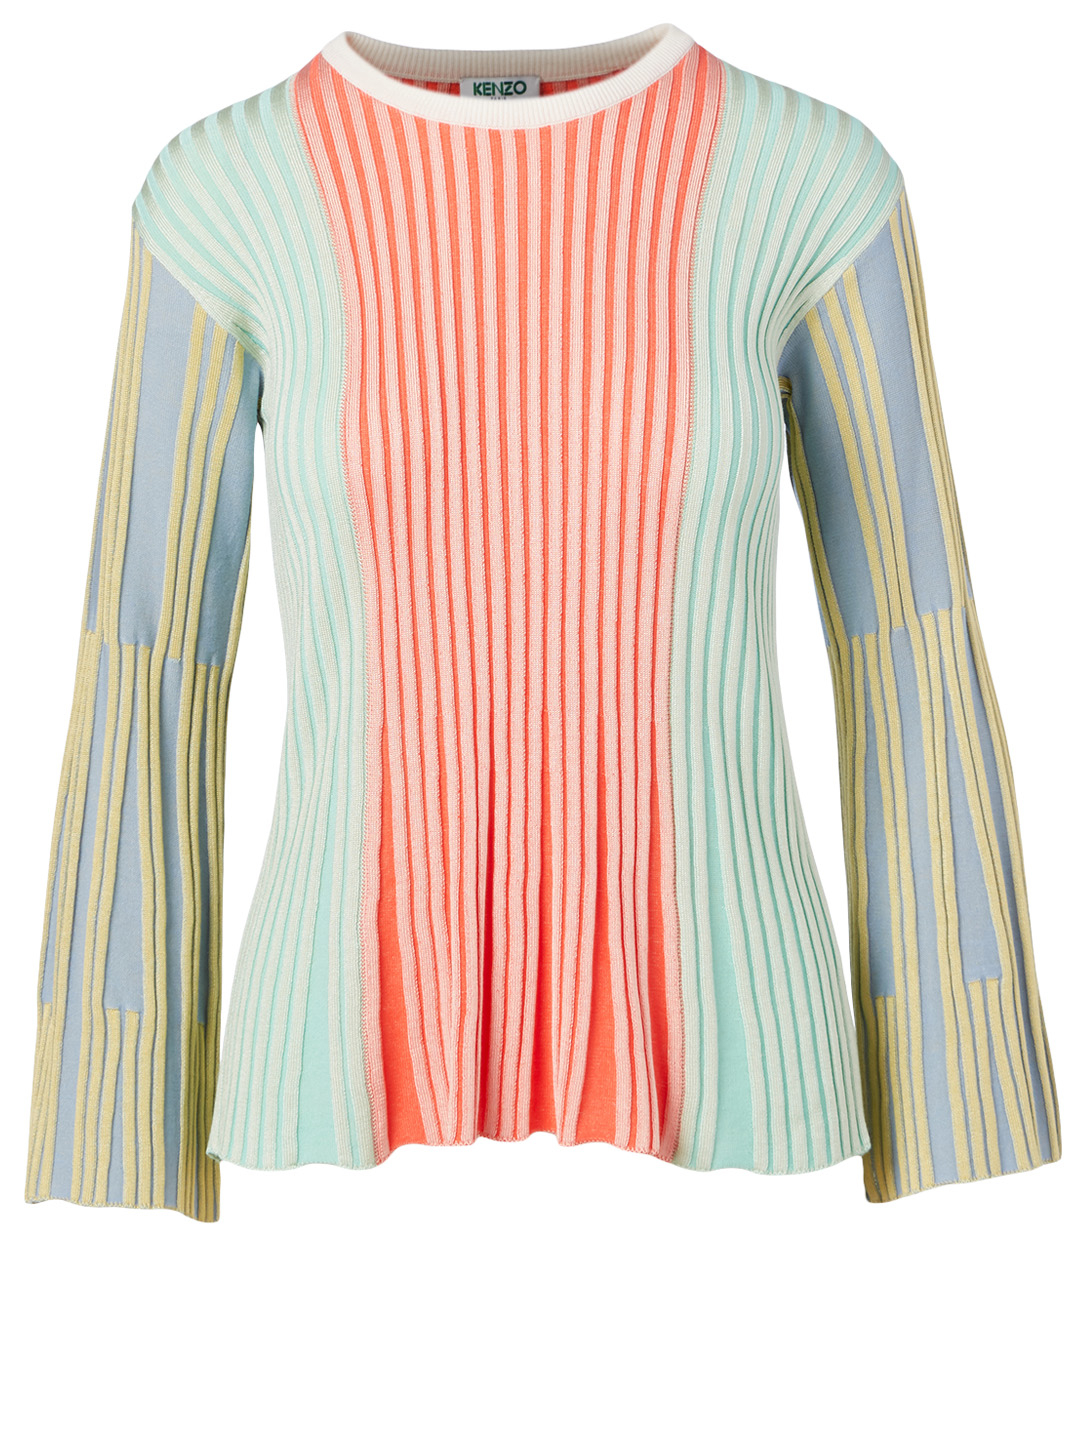 KENZO Ribbed Long-Sleeve Top Women's Multi